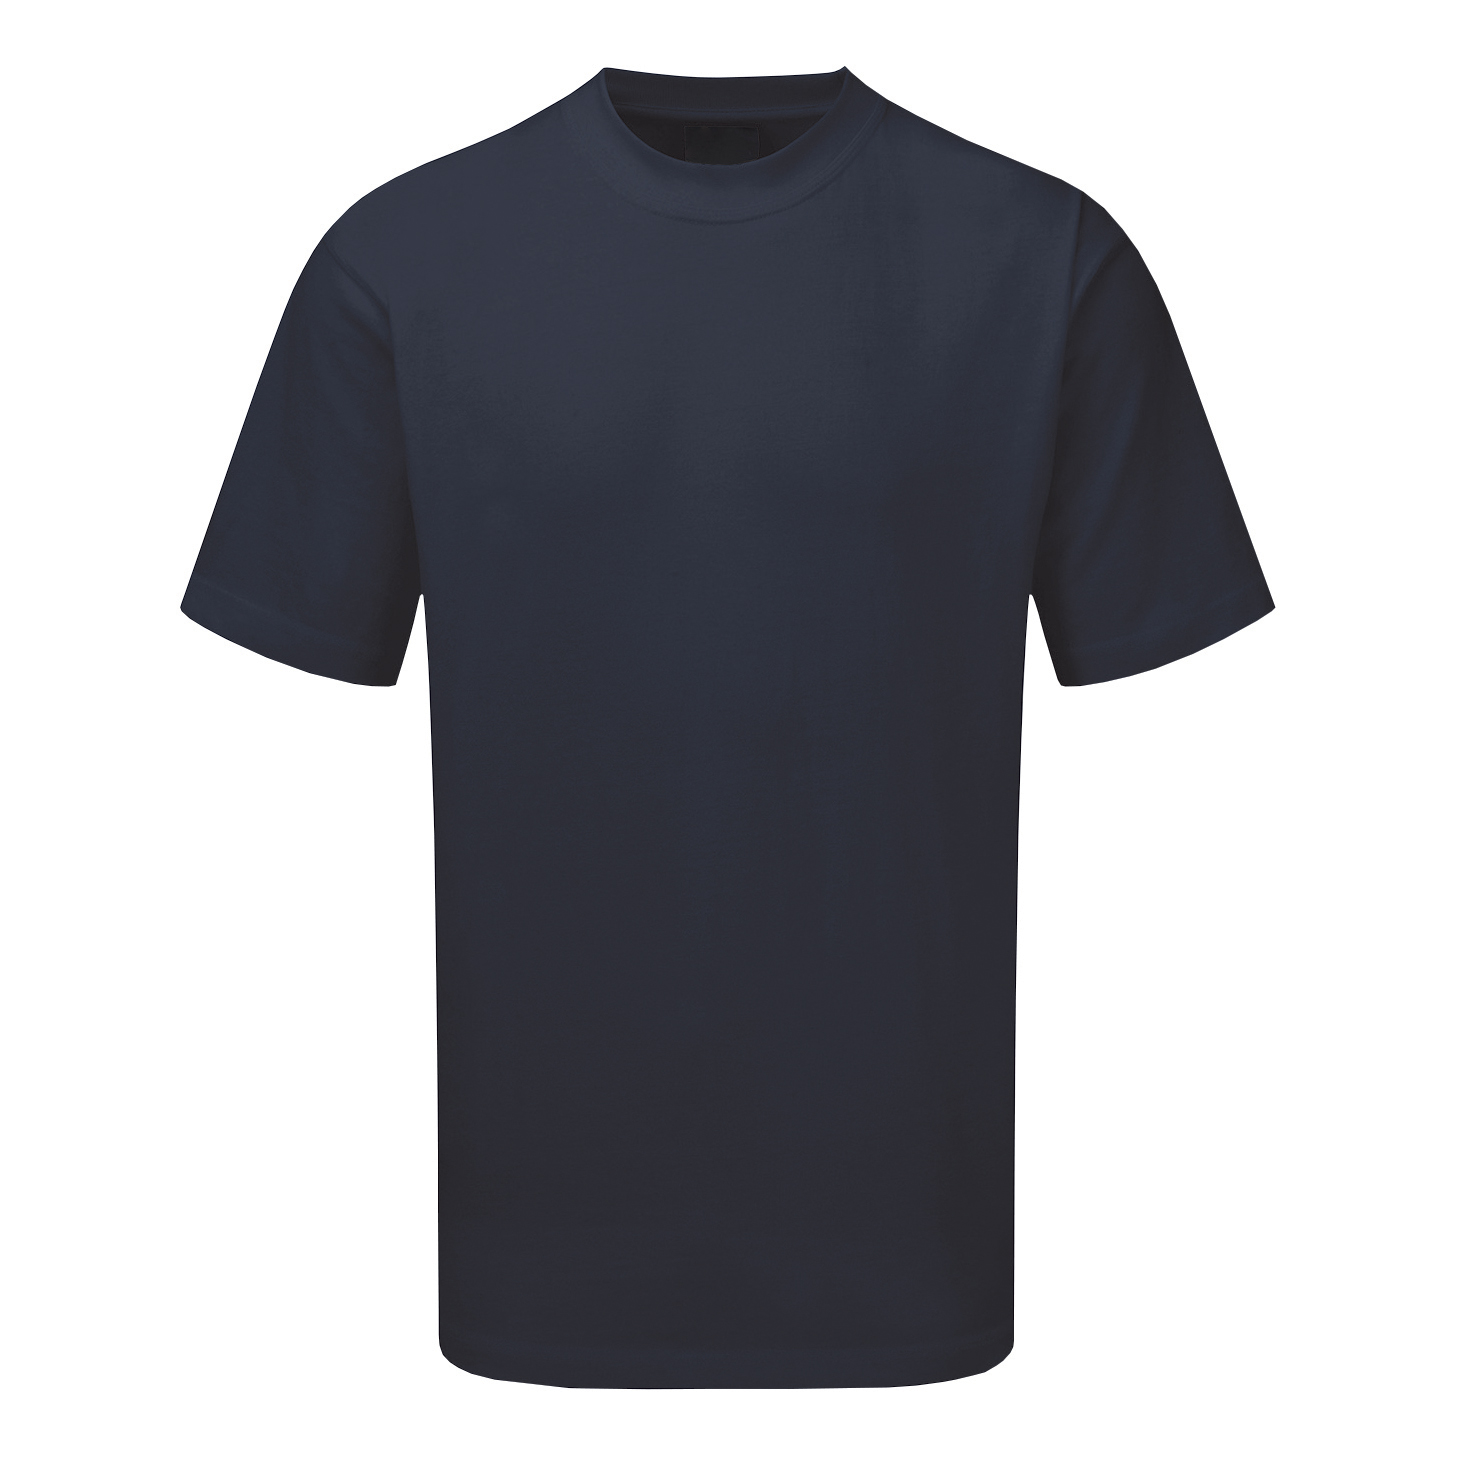 Premium T-Shirt Polycotton Triple Stitched Small Navy Blue Ref CLCTSHWNS *Up to 3 Day Leadtime*